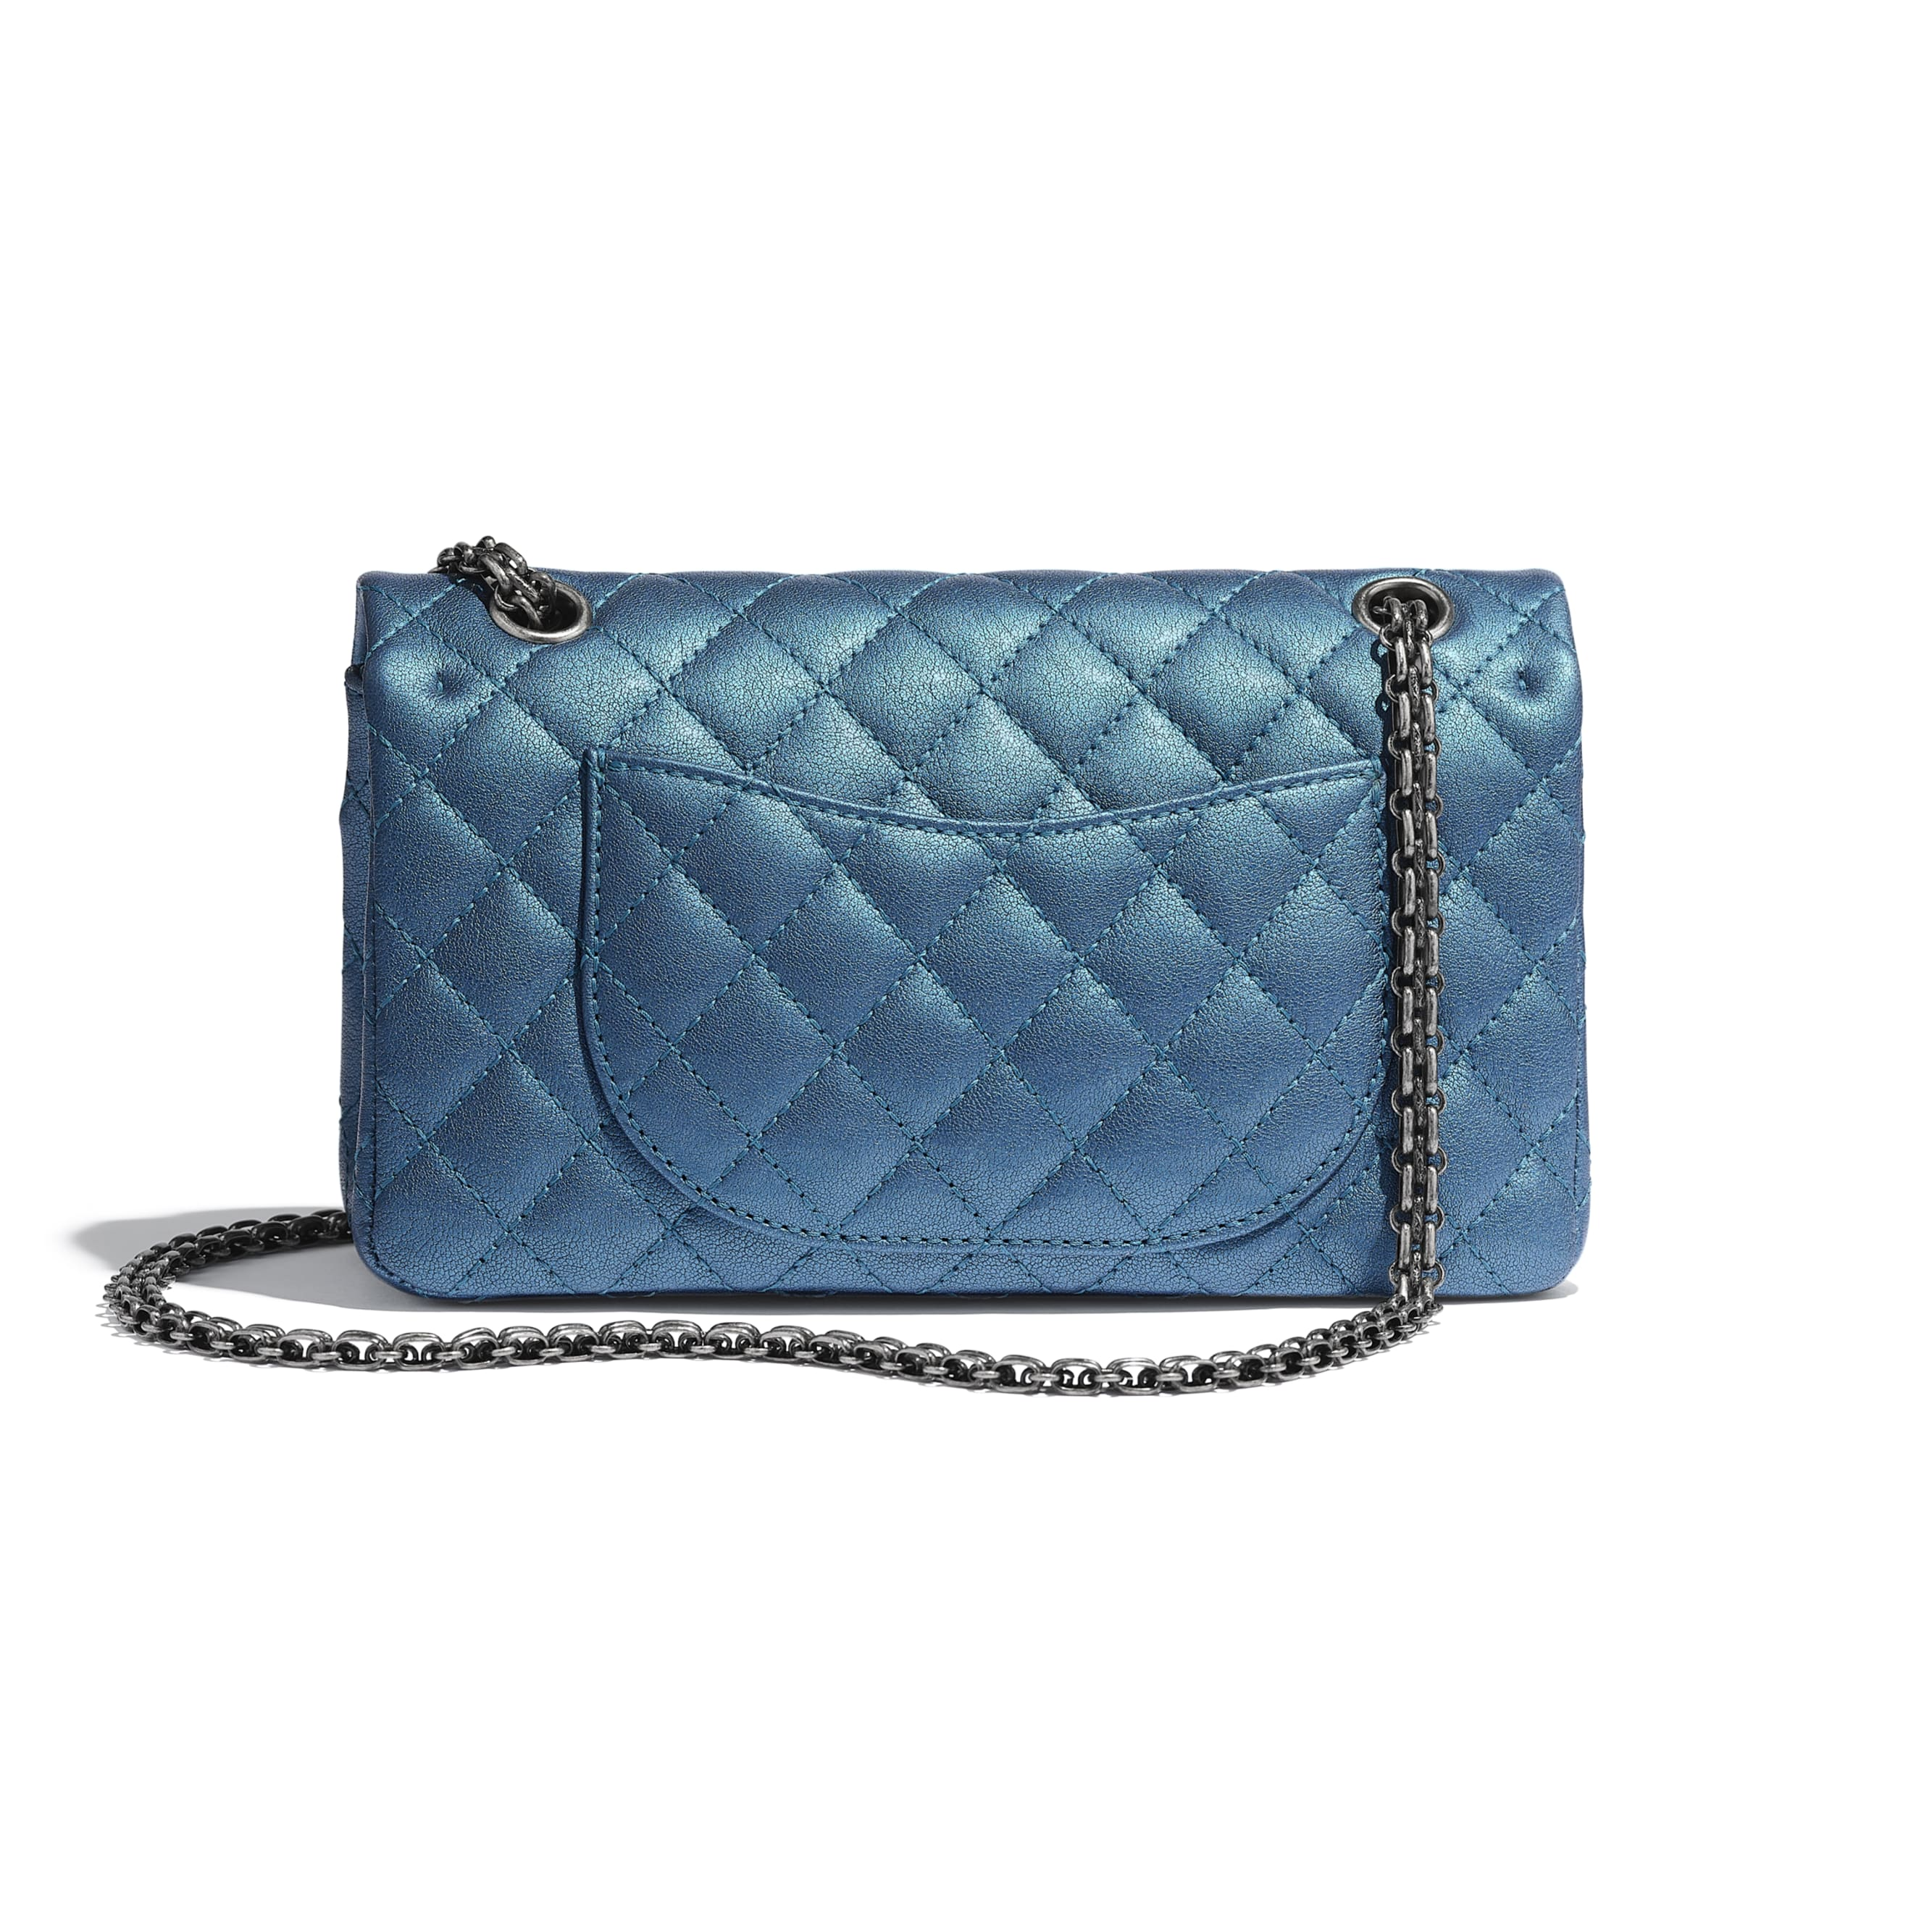 2.55 Handbag - Blue - Metallic Sheepskin & Ruthenium-Finish Metal - Alternative view - see standard sized version